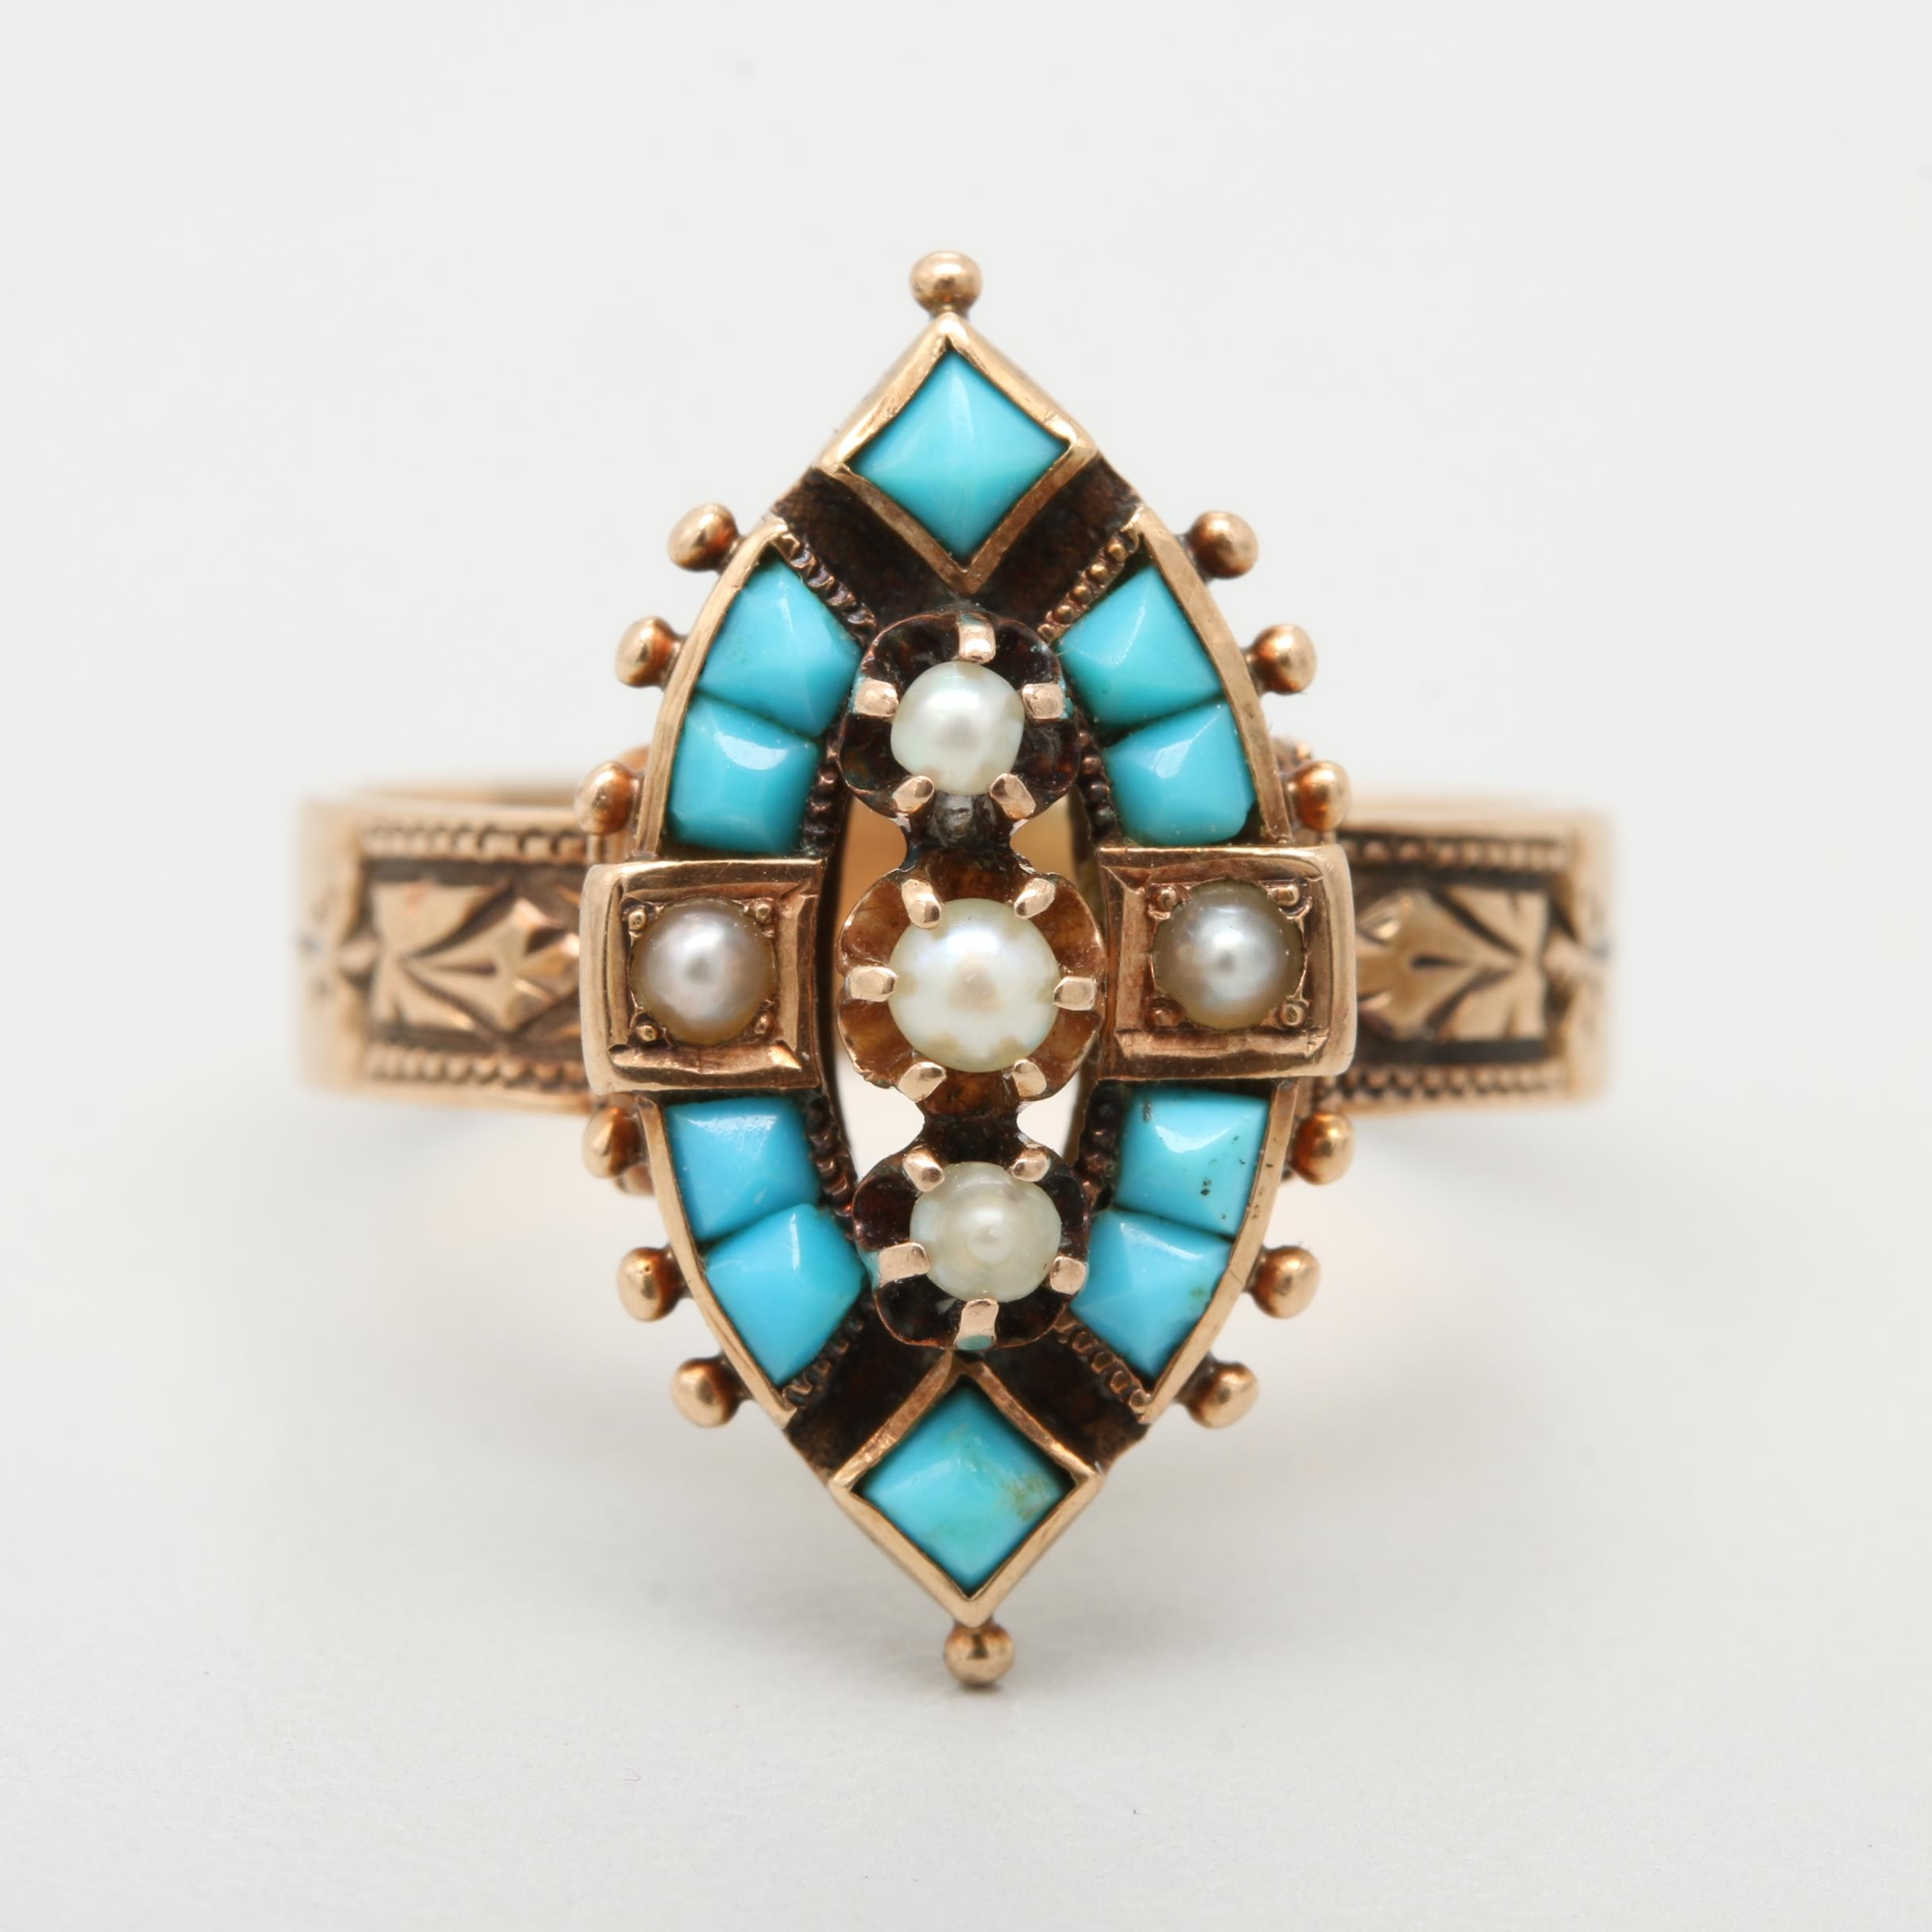 Victorian 14K Rose Gold Turquoise and Seed Pearl Ring